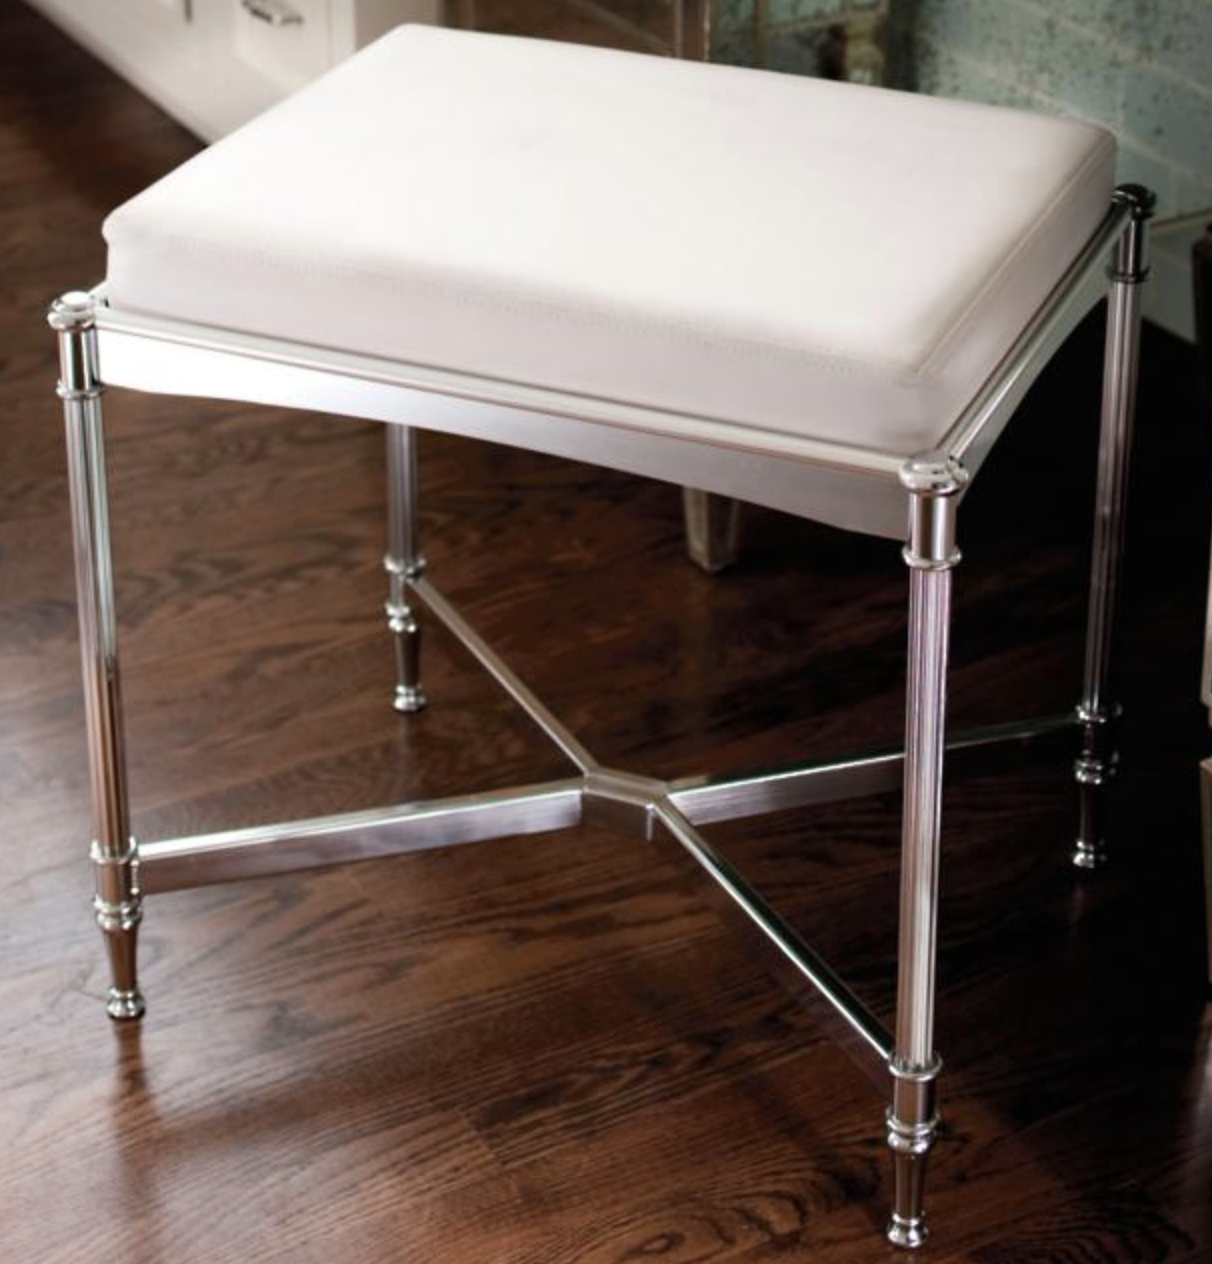 Evalia Design_Bellmont Stool